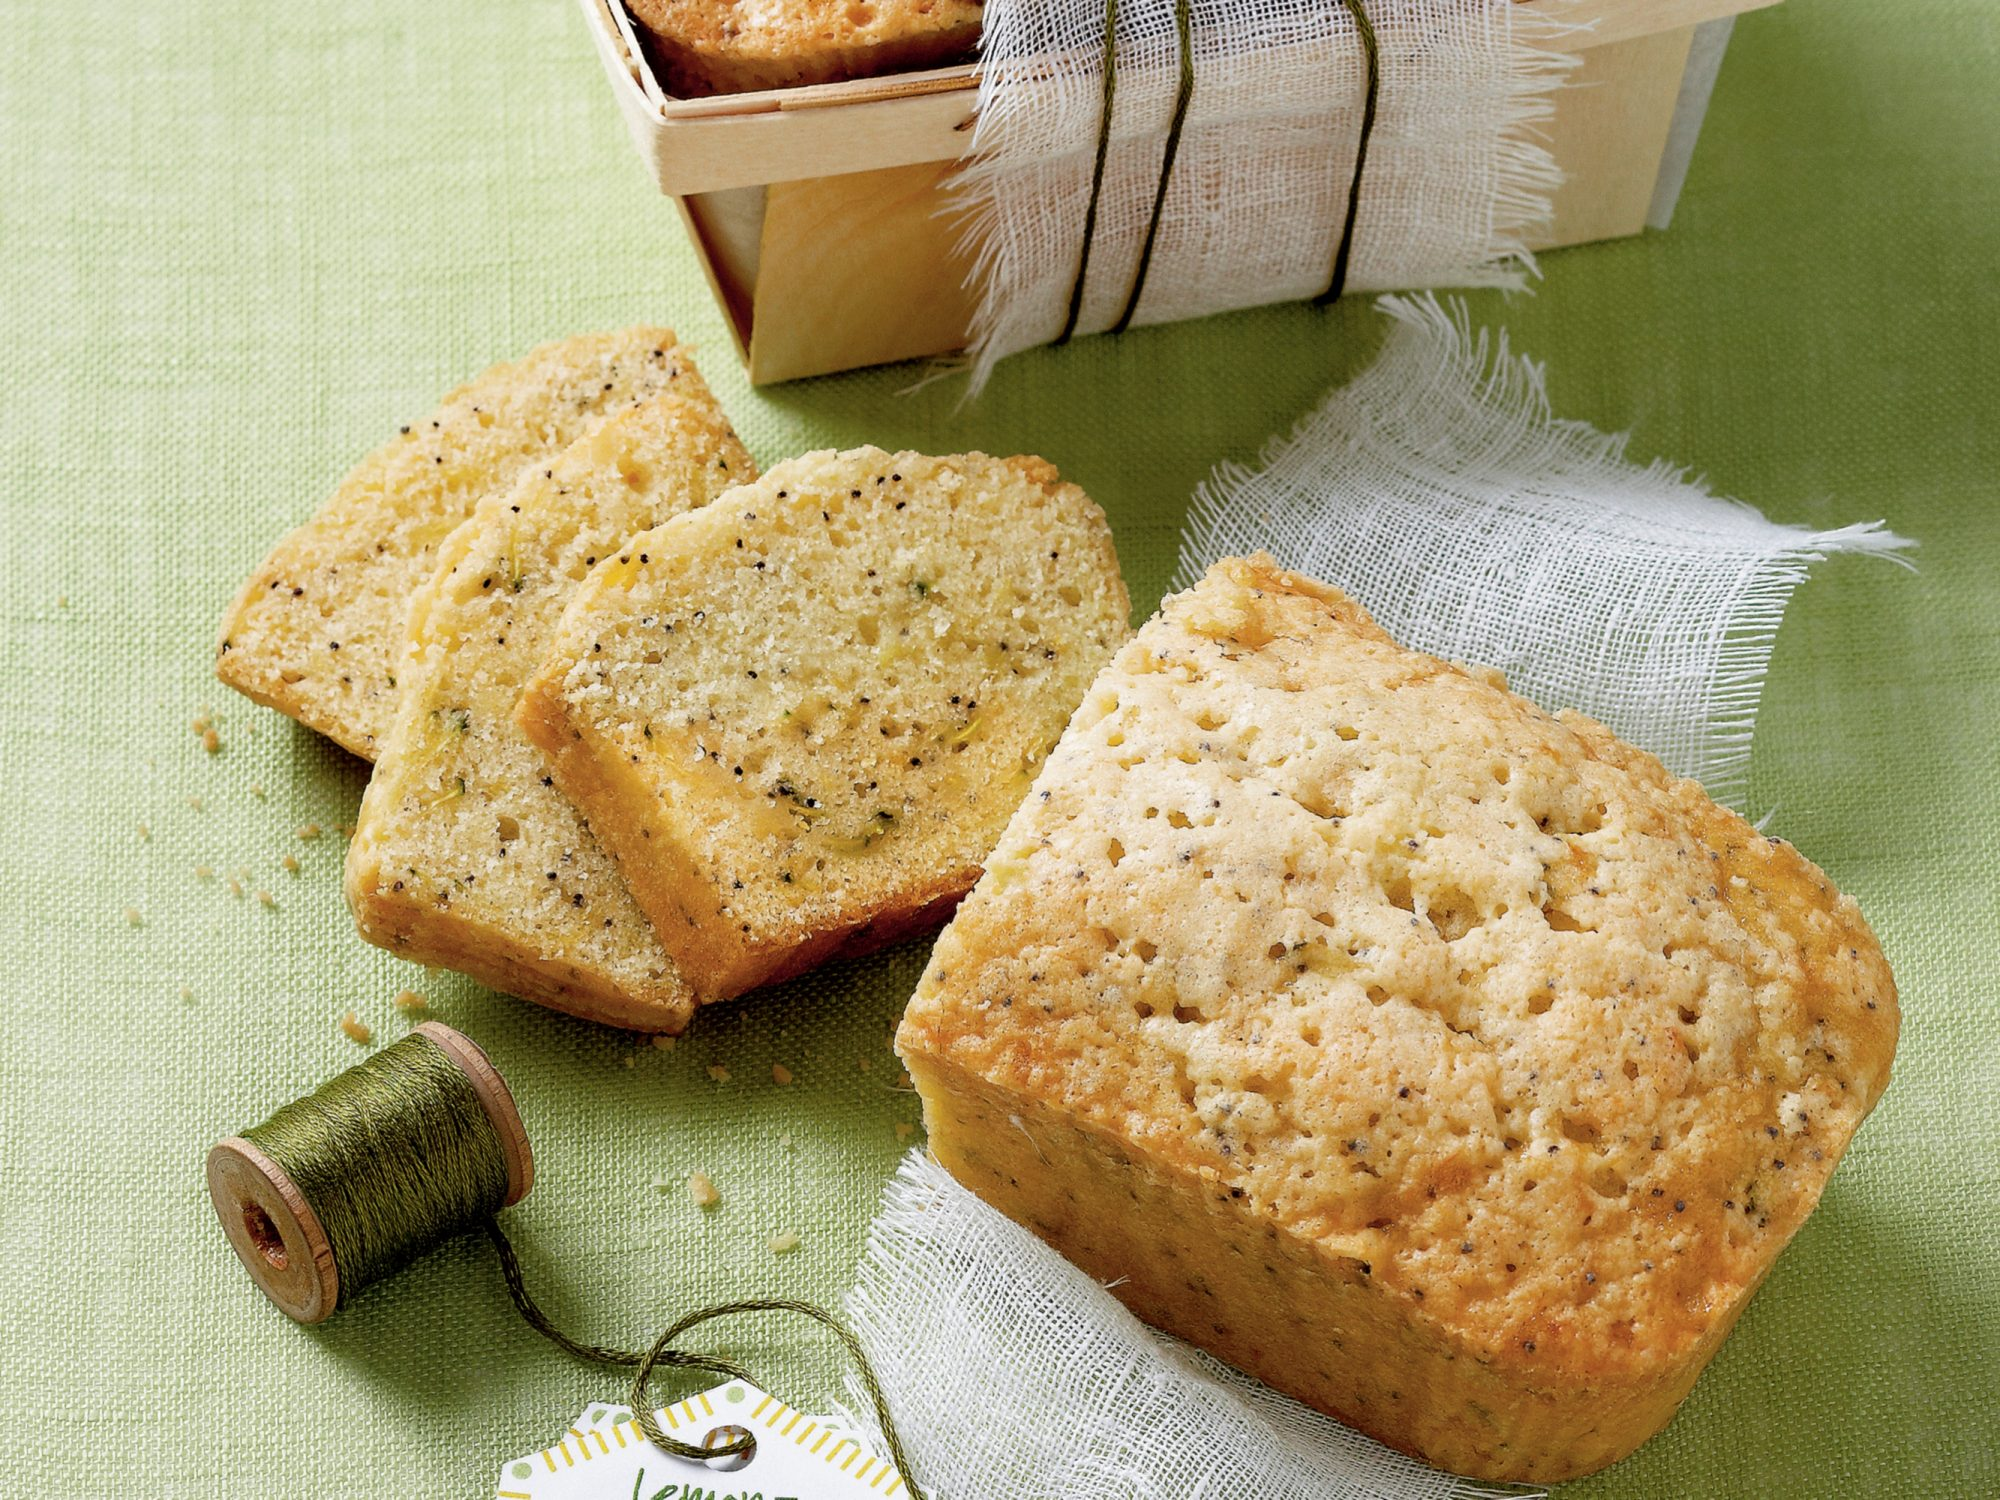 Lemon-Poppy Seed Zucchini Bread